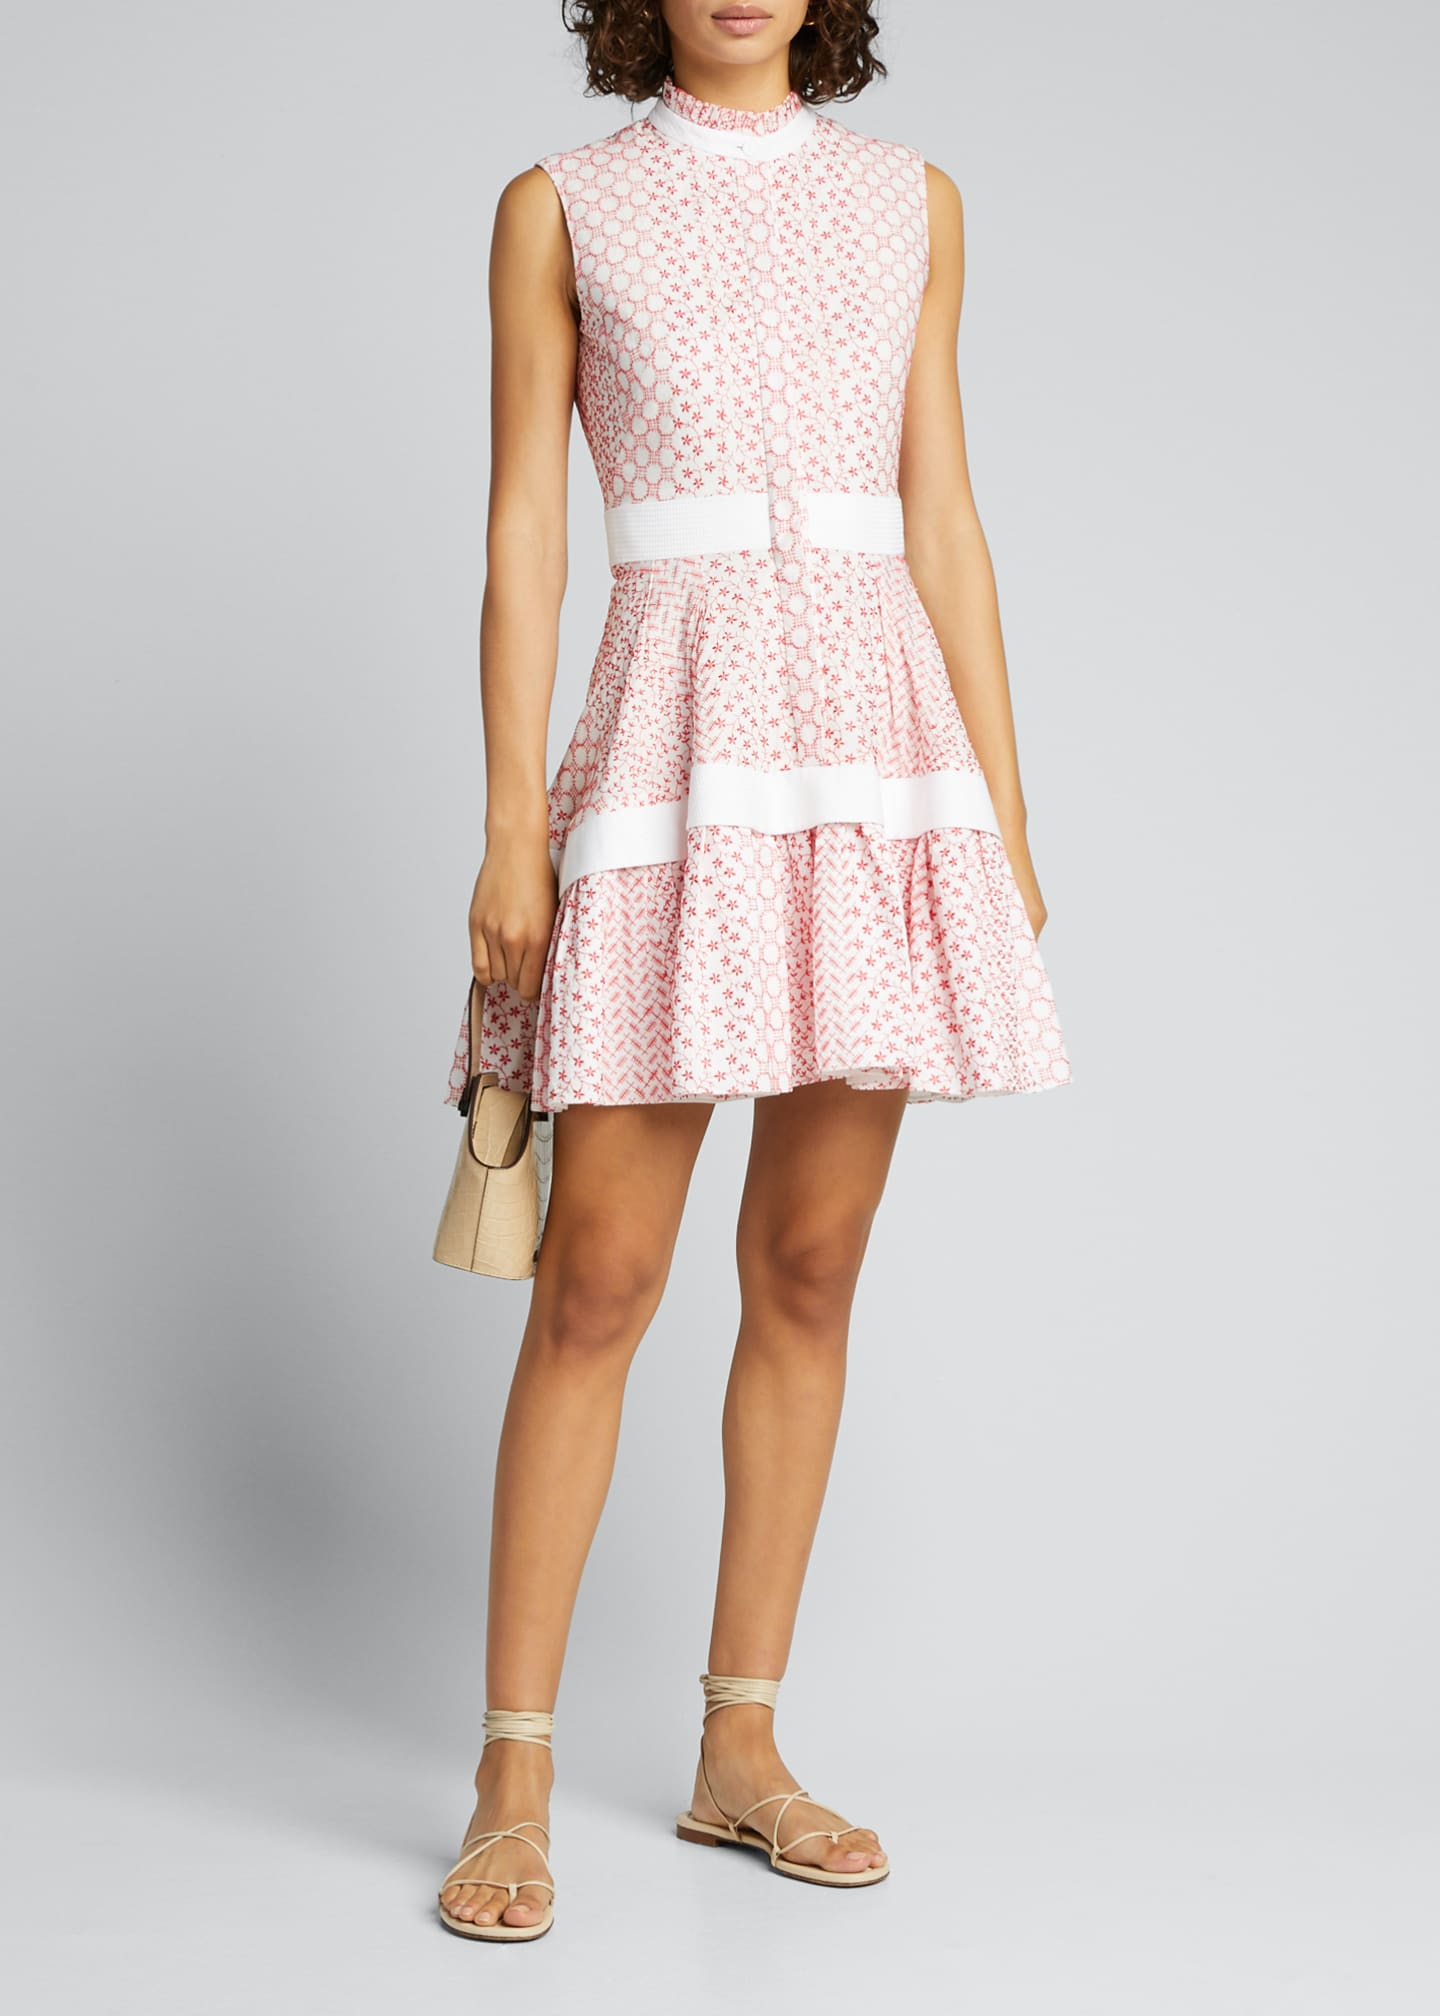 Alexis Suriya Embroidered Sleeveless Flare Dress